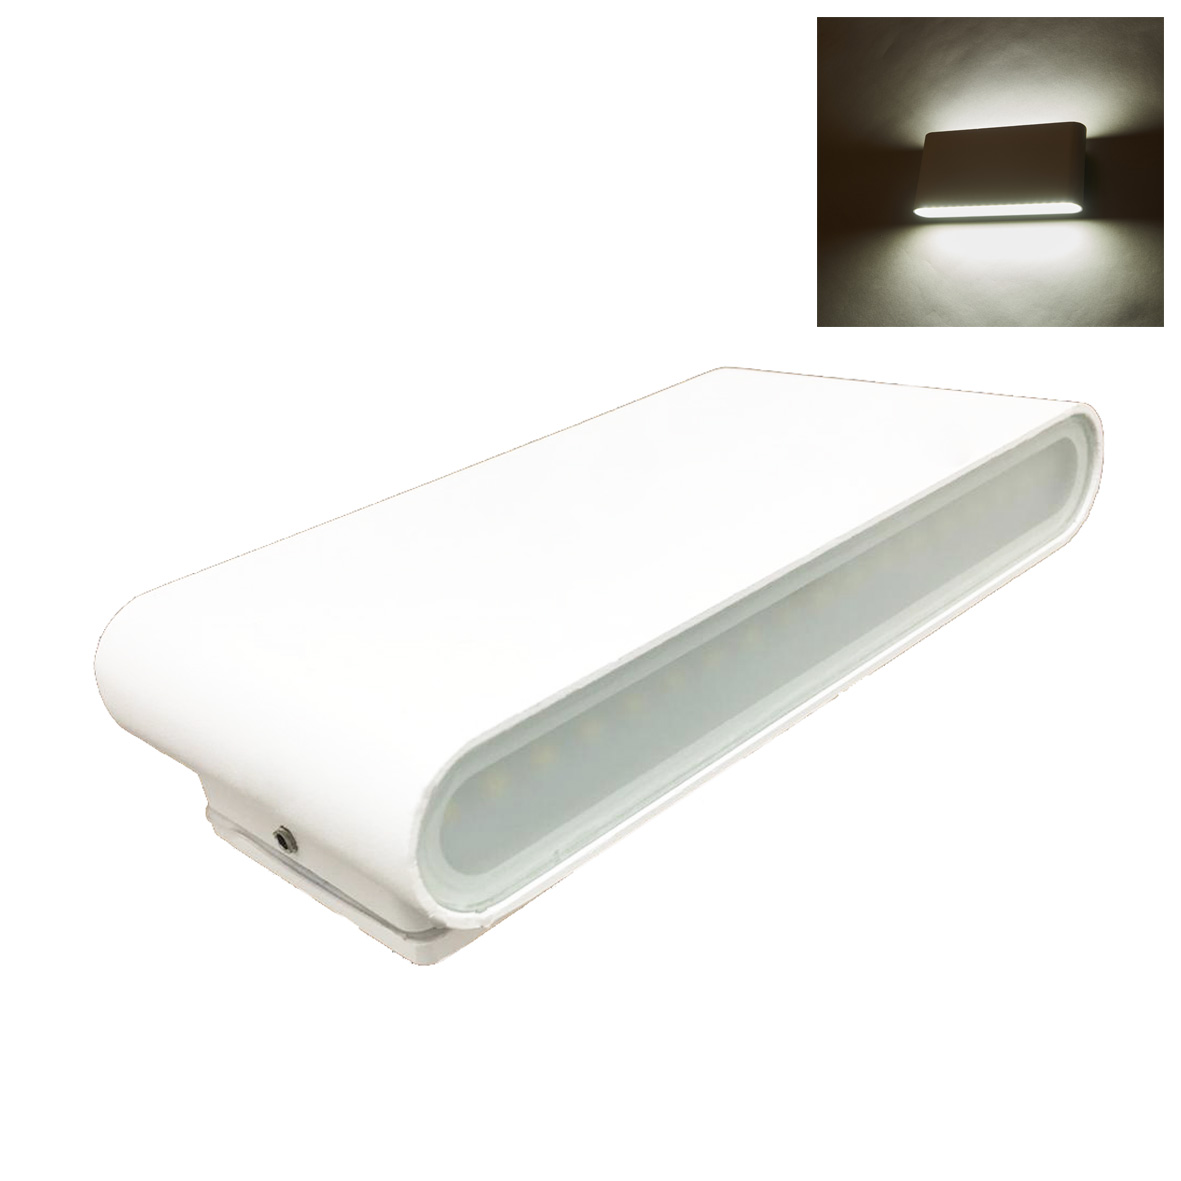 Led lamp with double light beam 16w WHITE applique thin wall 220v